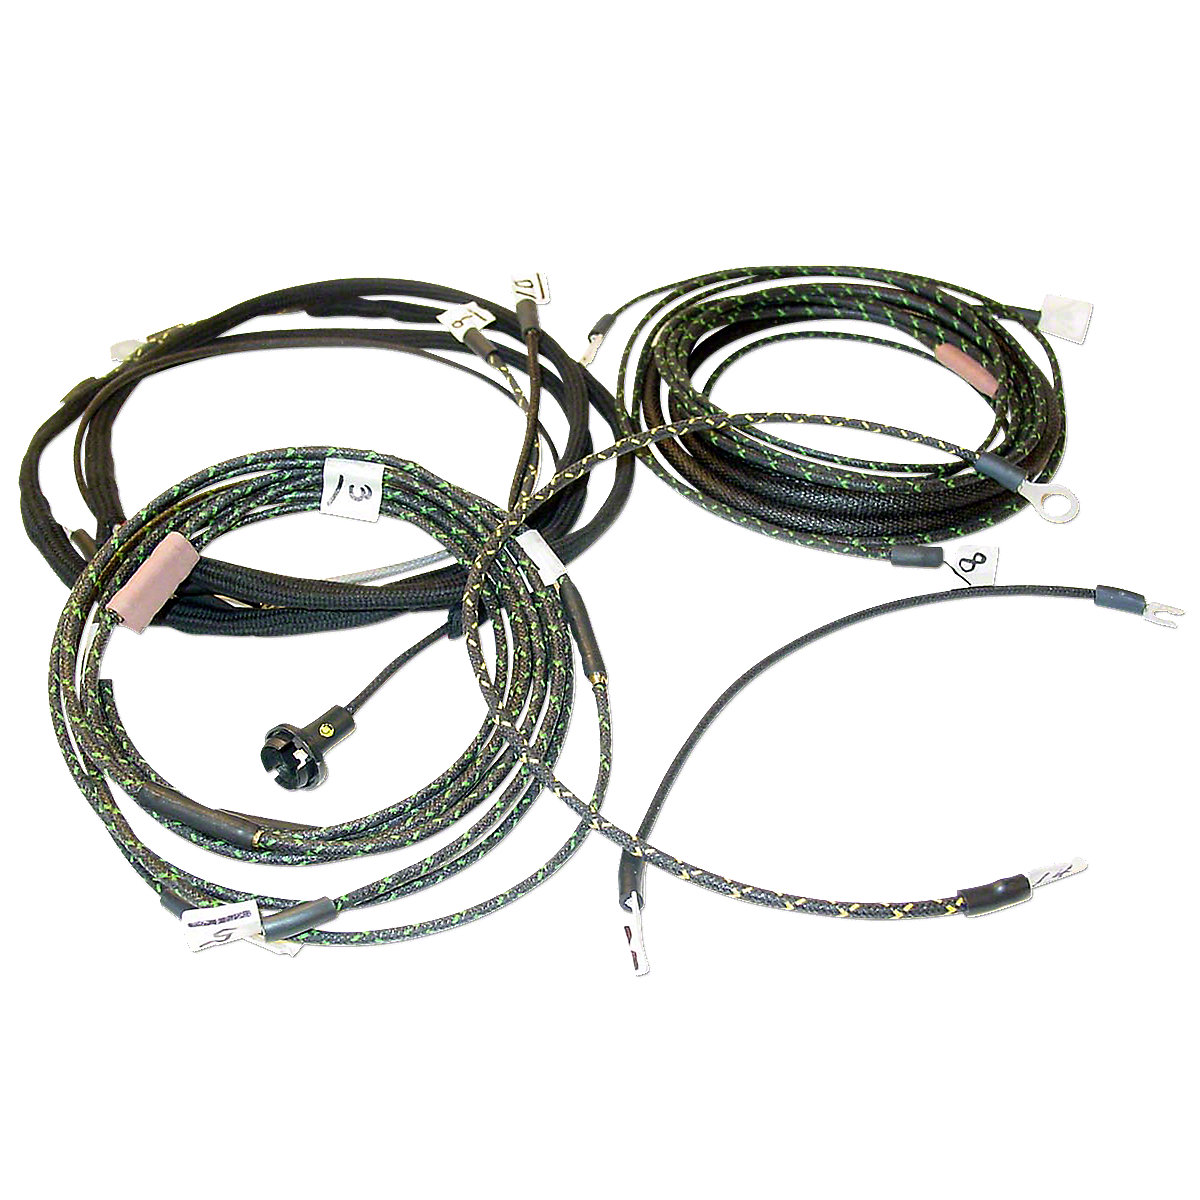 Wiring Harness For Massey Ferguson: TO20.